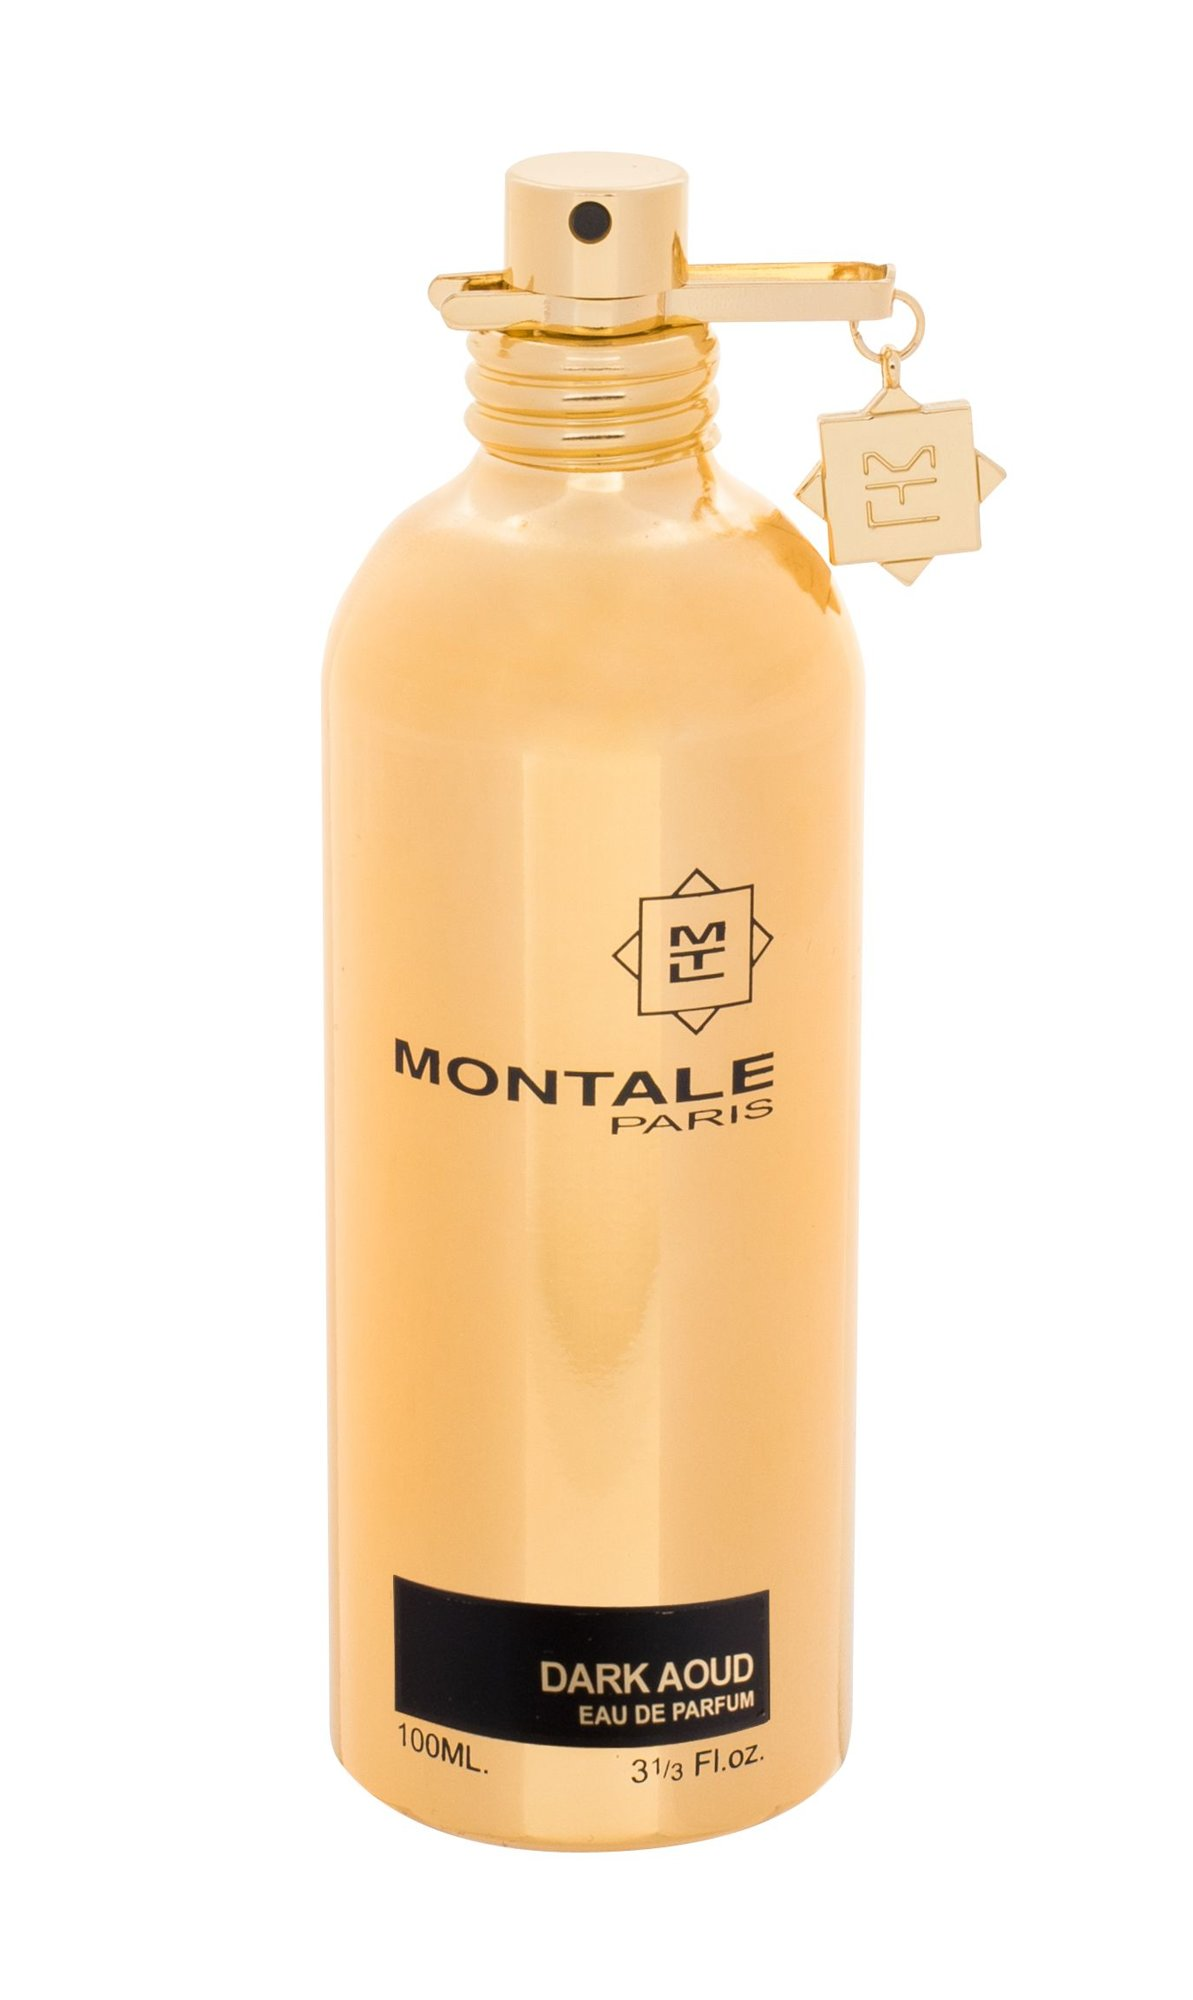 Montale Paris Dark Aoud Eau de Parfum 100ml